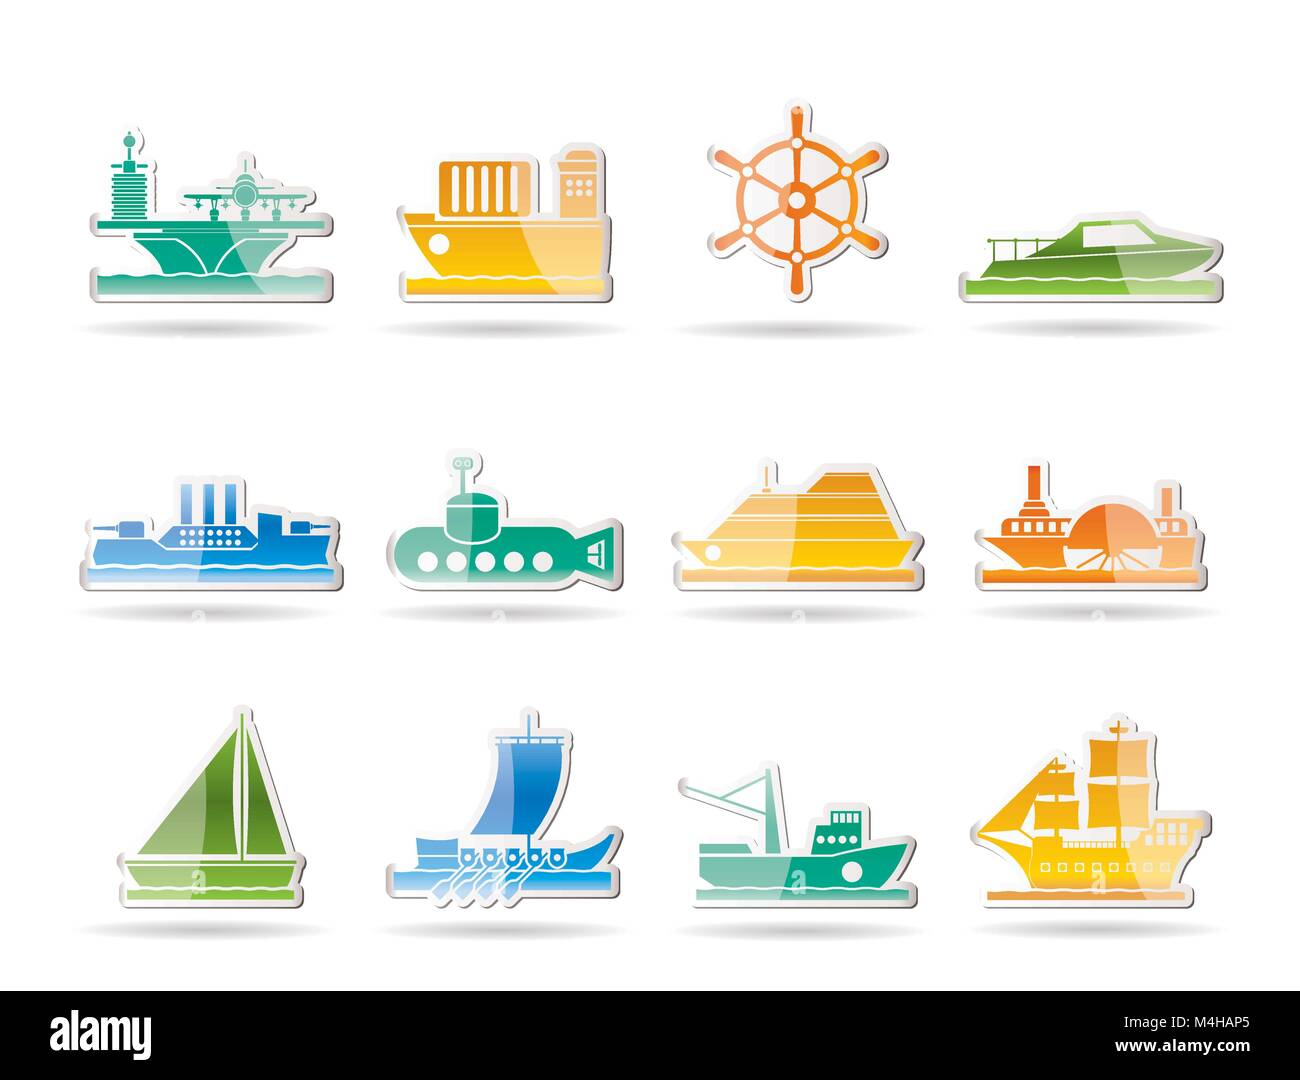 Different Types Of Boat Stock Photos & Different Types Of Boat Stock